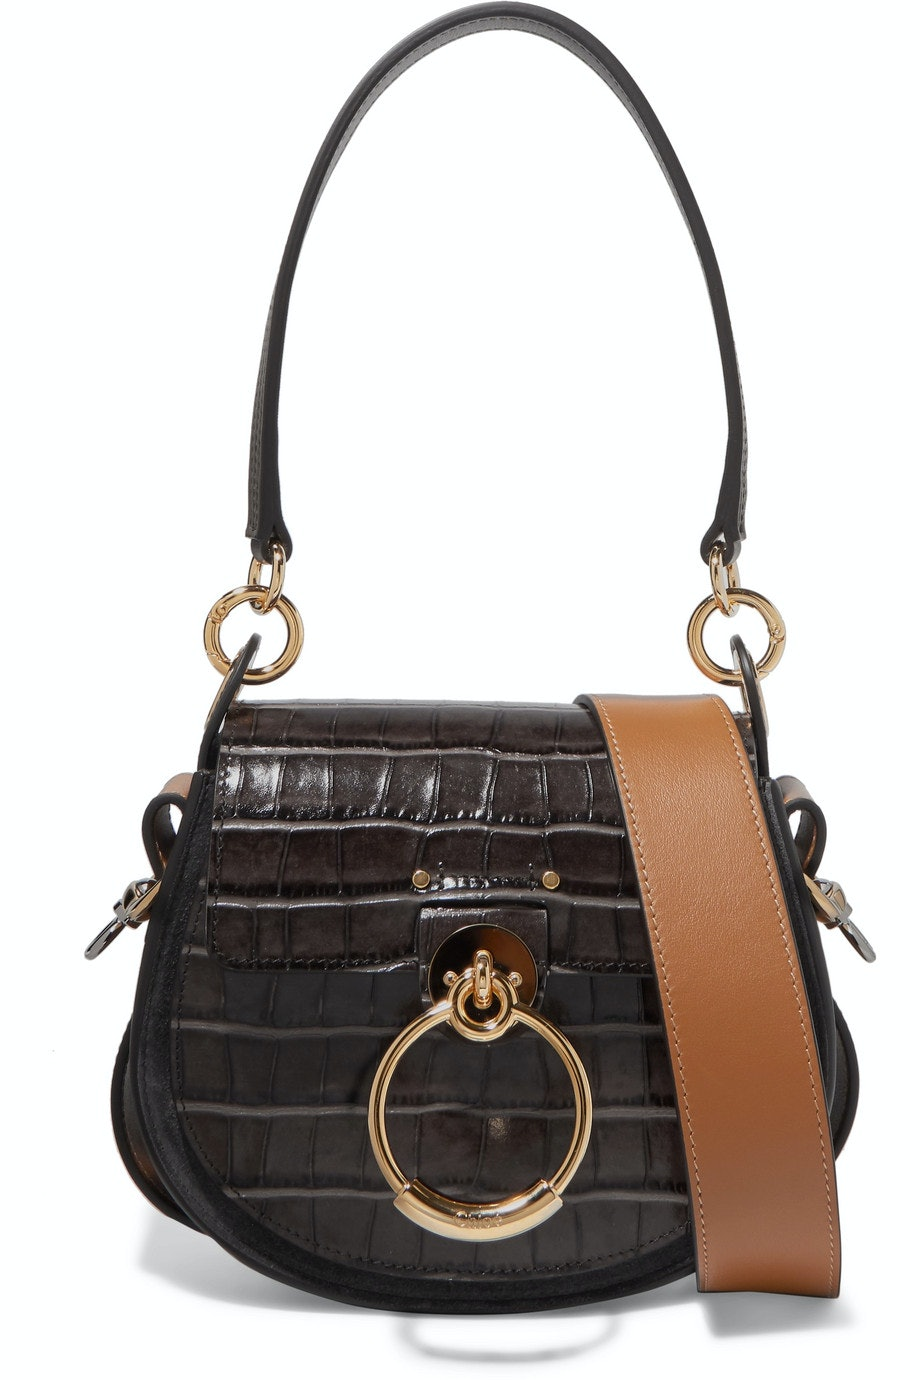 eb98f0d8ae2e 12 Trendy Handbags For 2019 To Consider Investing In This Year